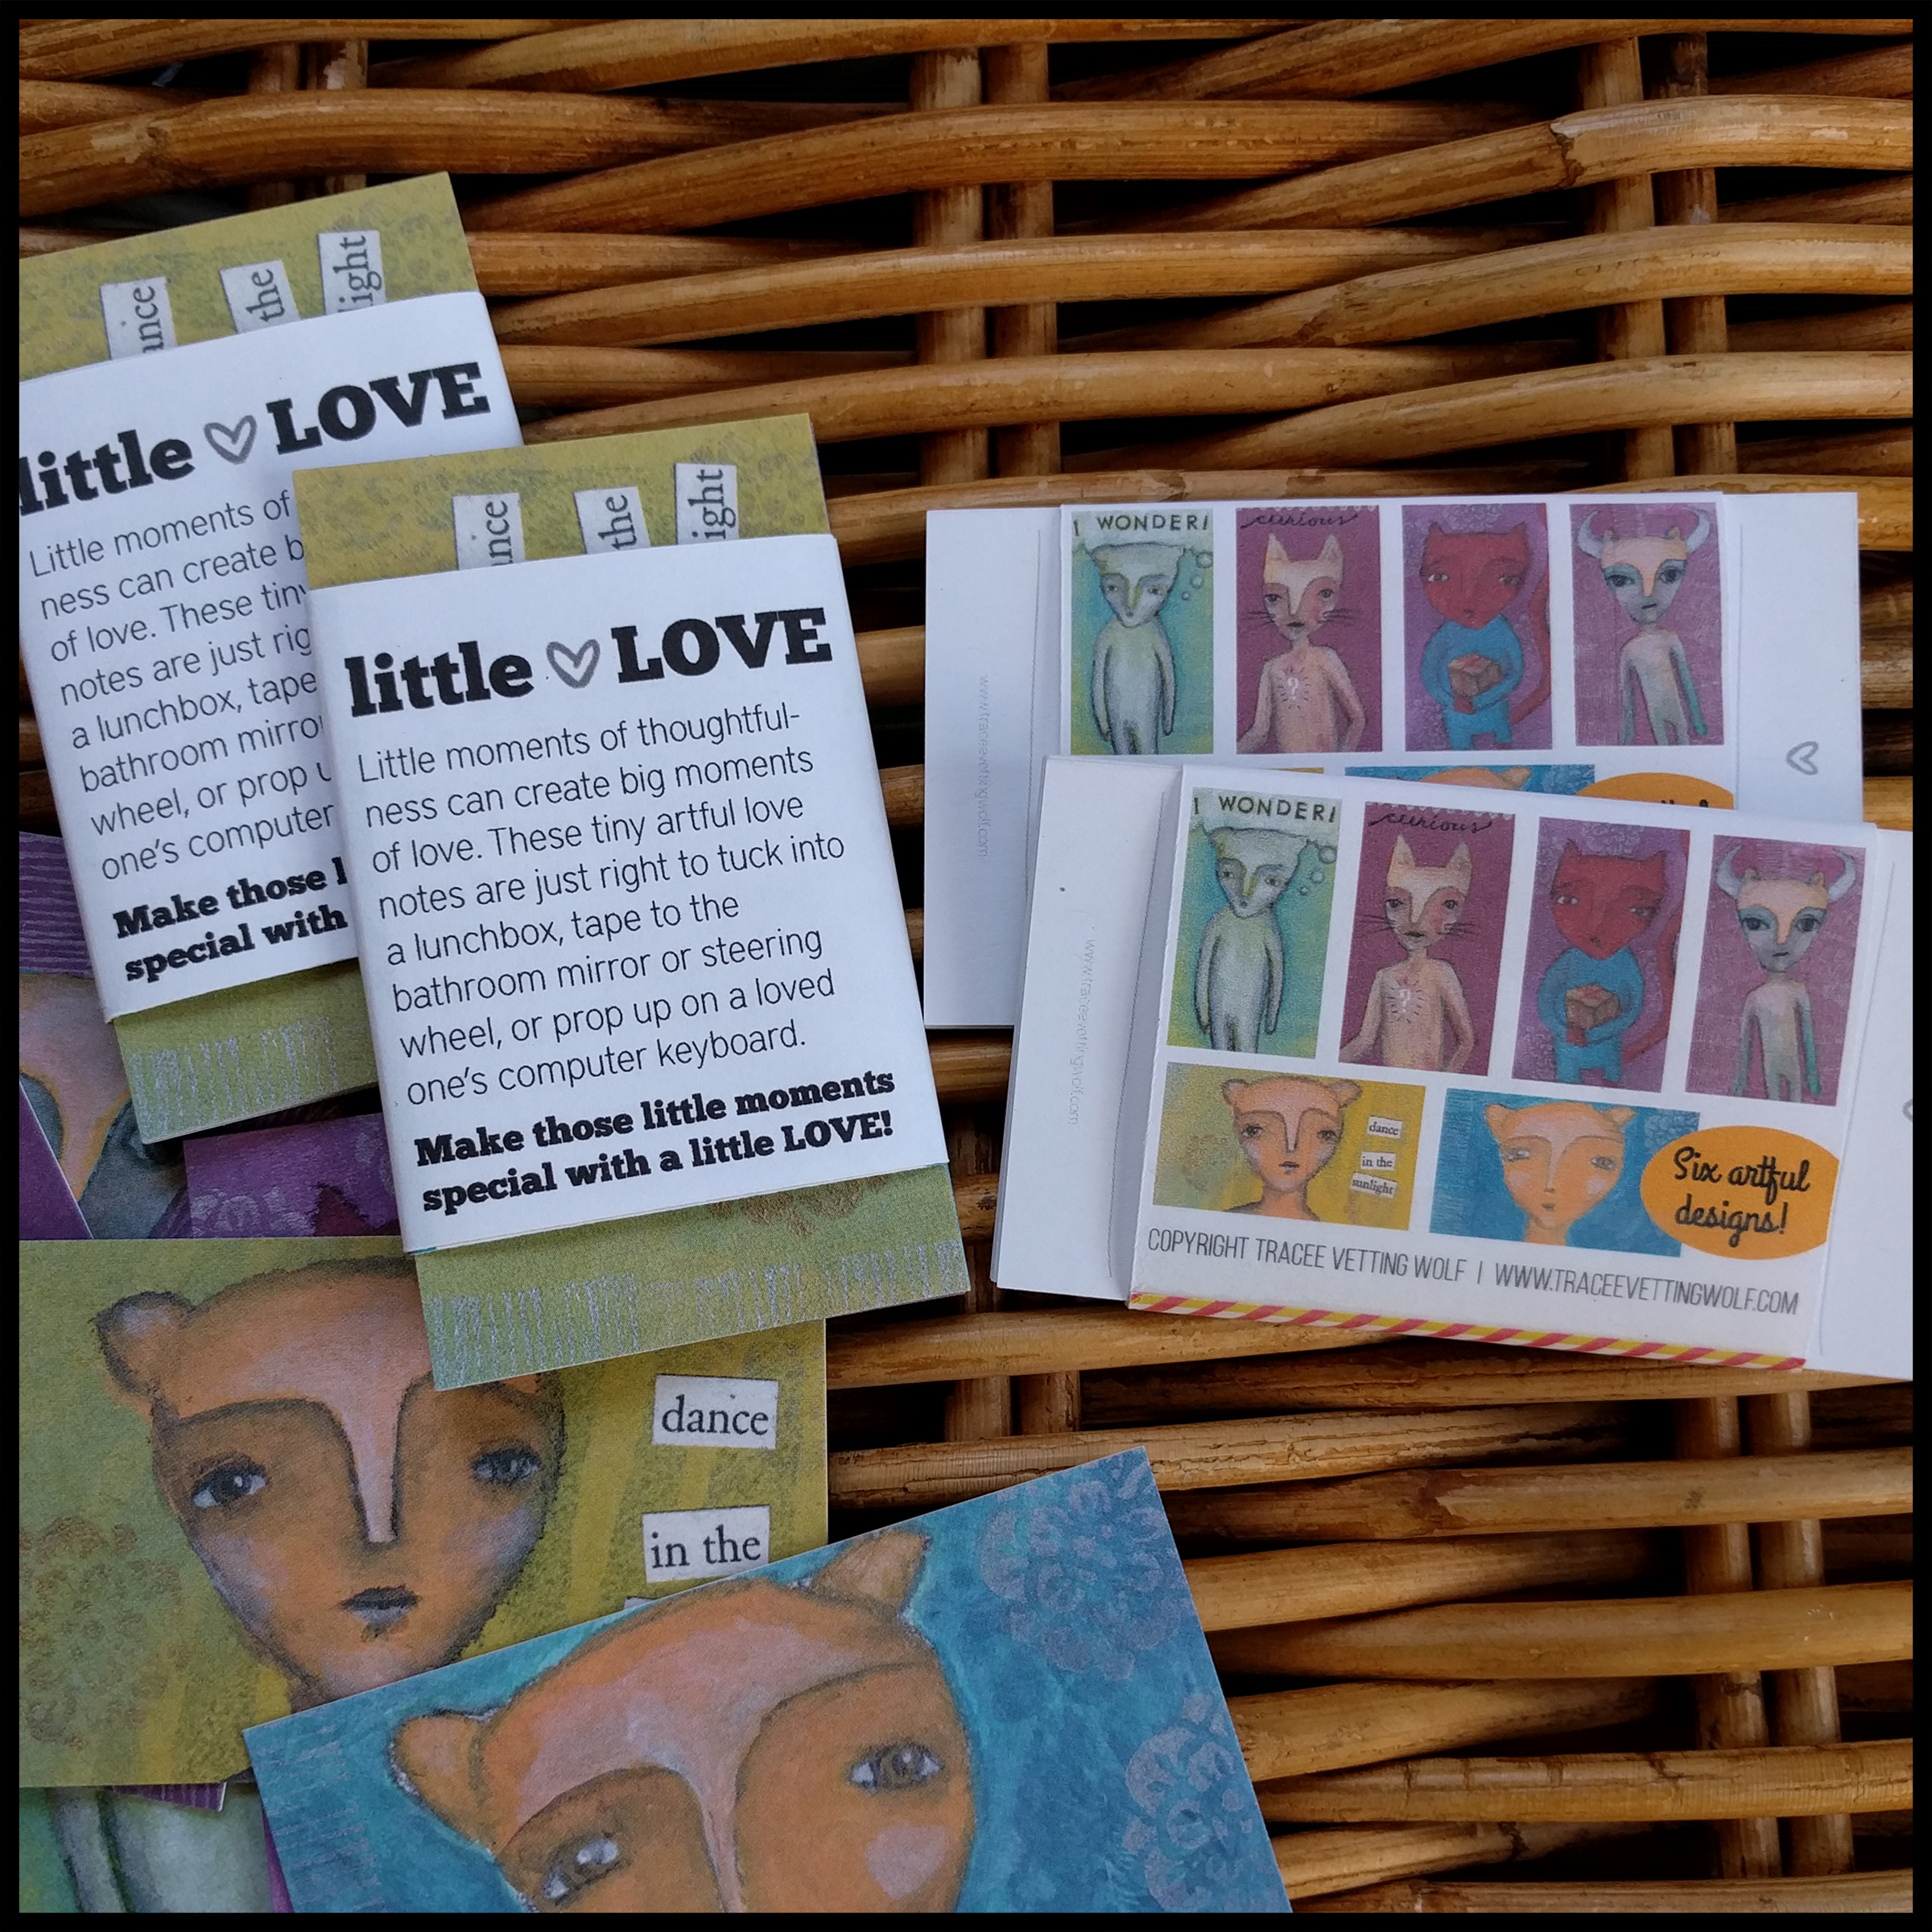 Bathroom Mirror Love Notes little love: imaginary creatures mini lovenotes - tracee vetting wolf